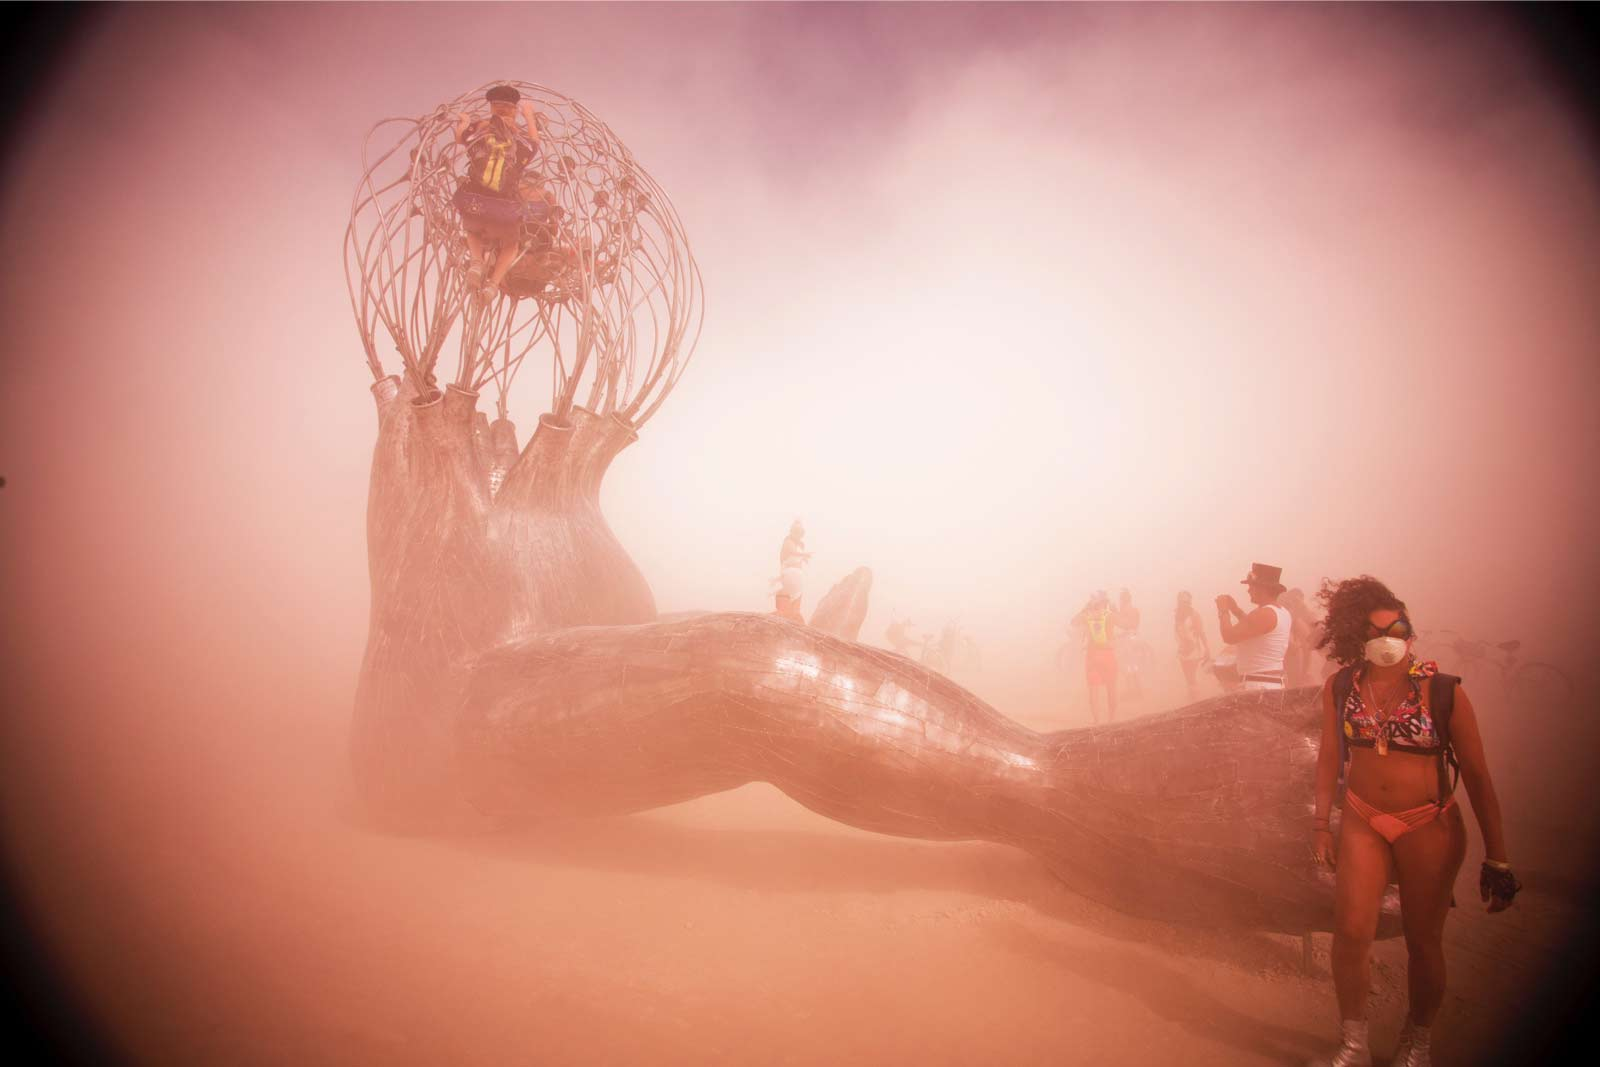 Burning-Man-2015-111;-Playa-Dust-Storm-Sophia-Brainchild